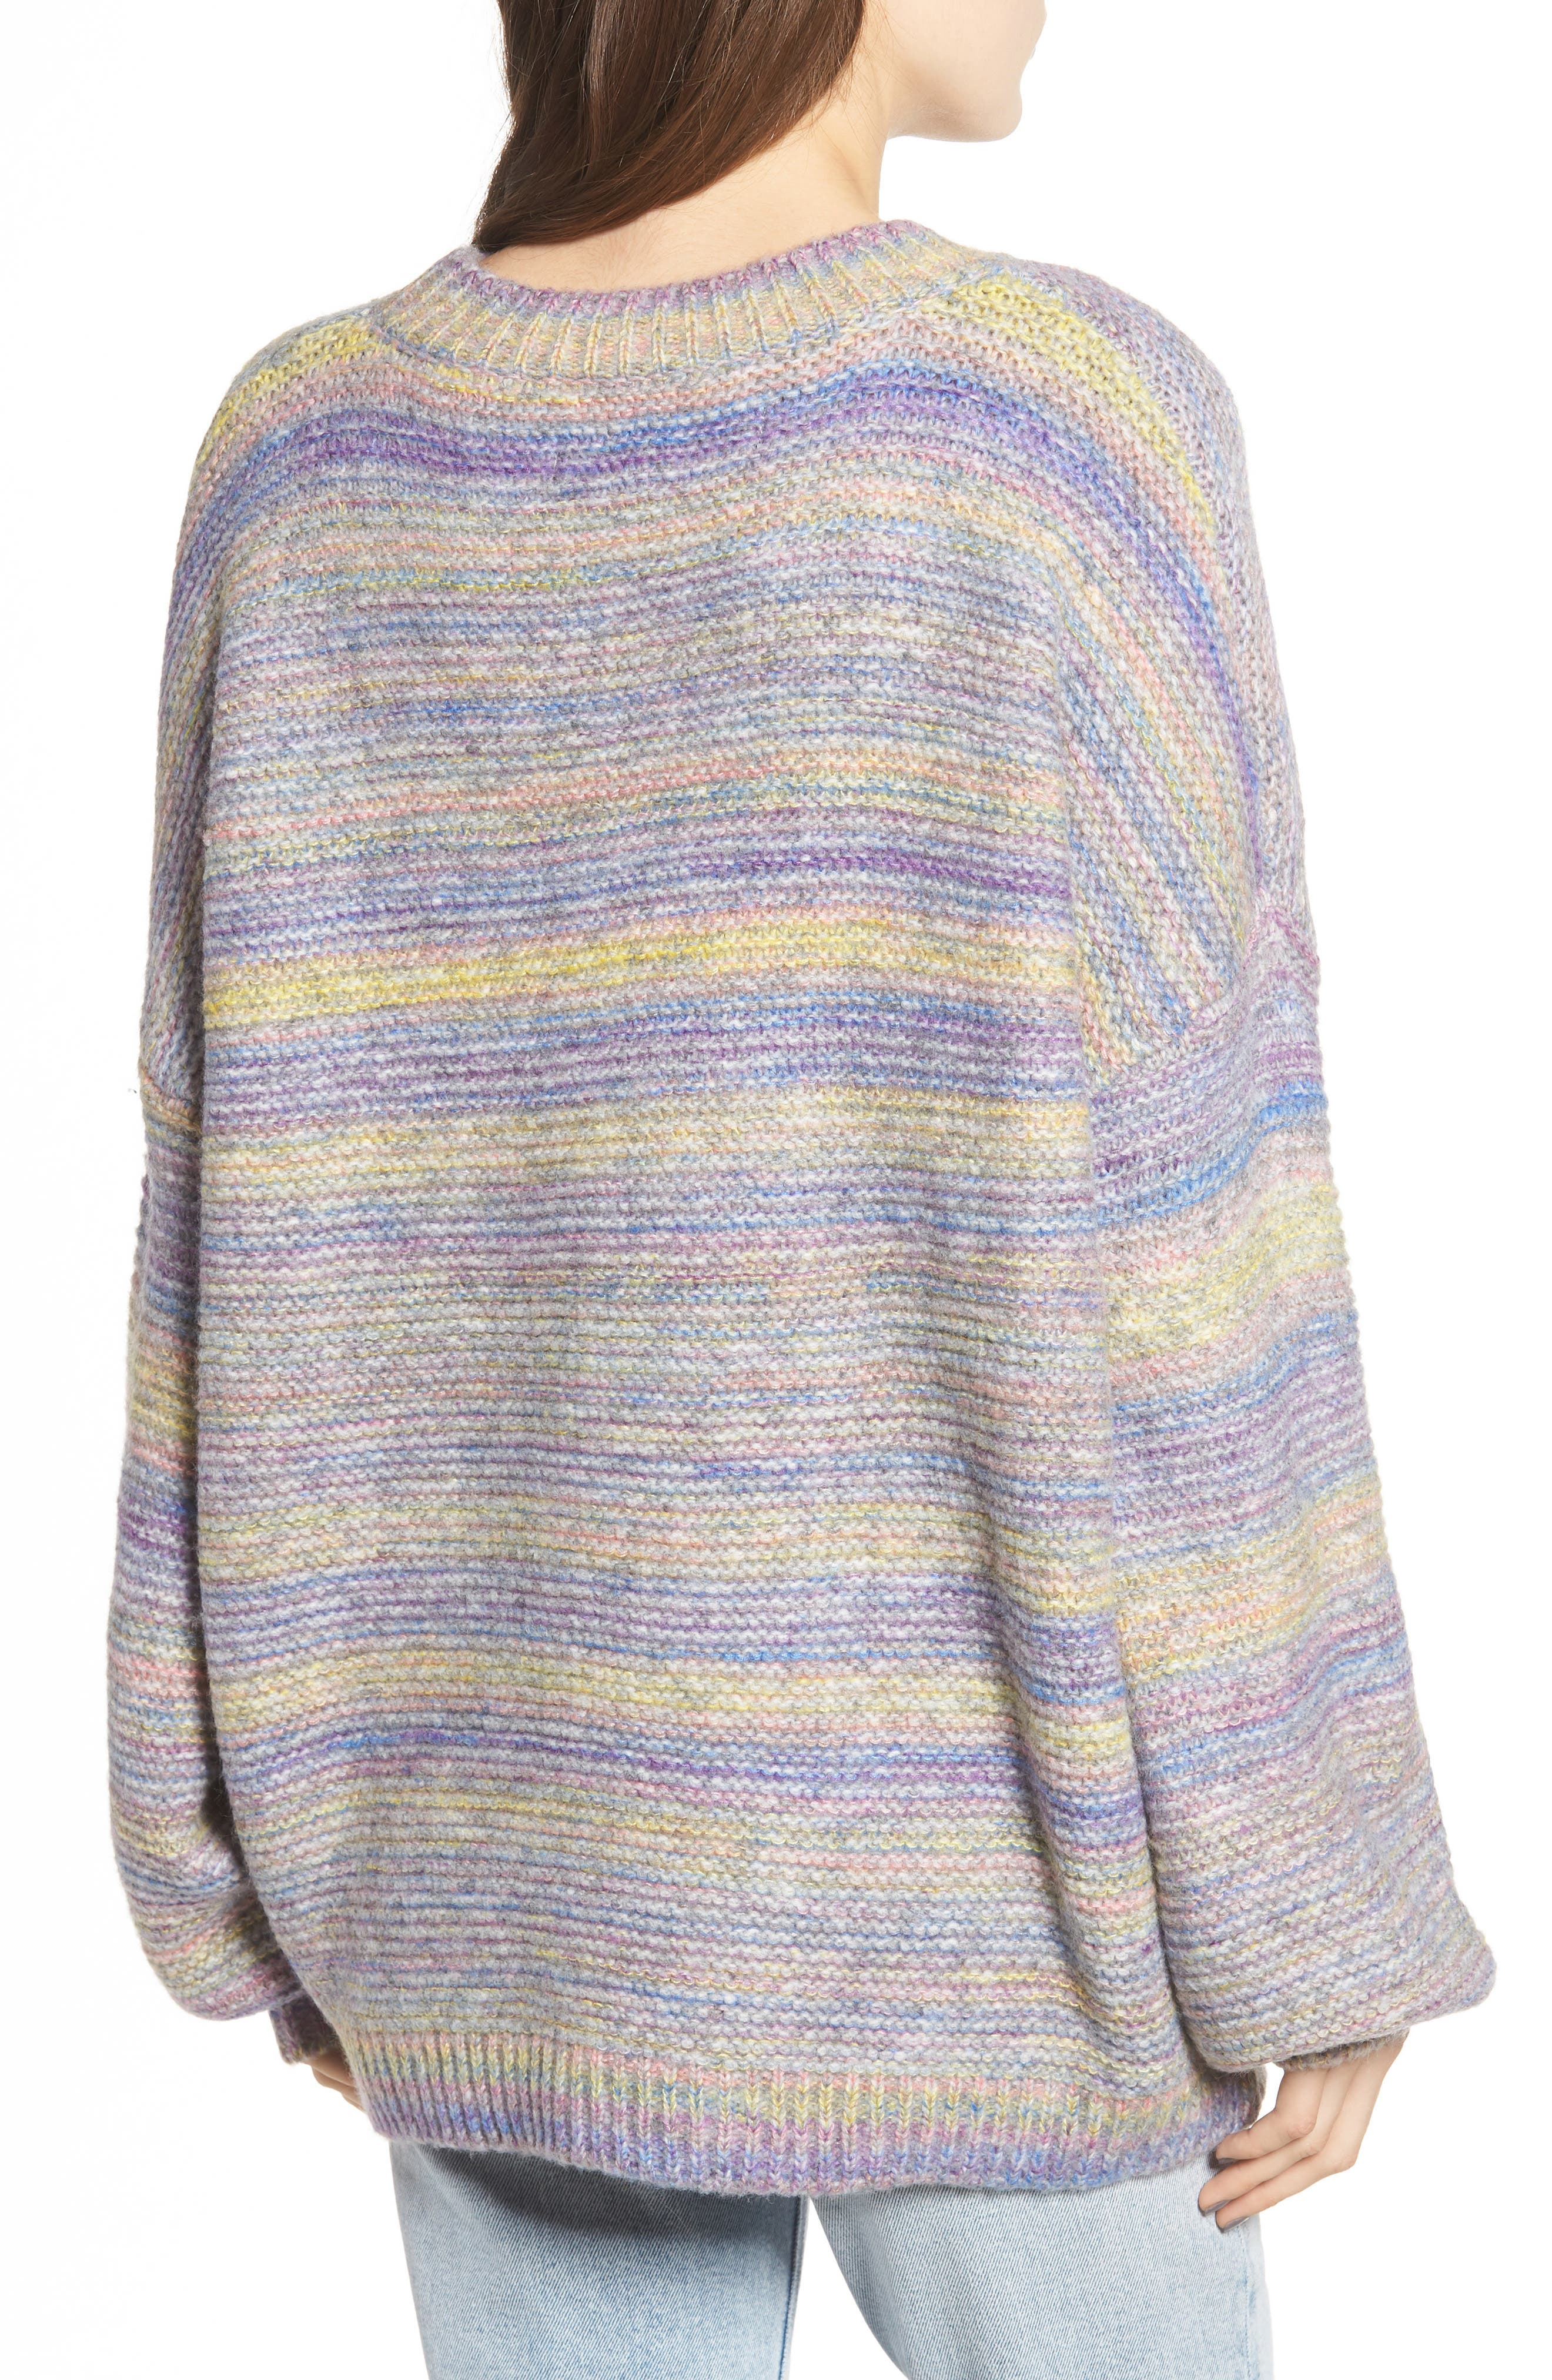 Rainbow Marl Sweater,                             Alternate thumbnail 2, color,                             YELLOW